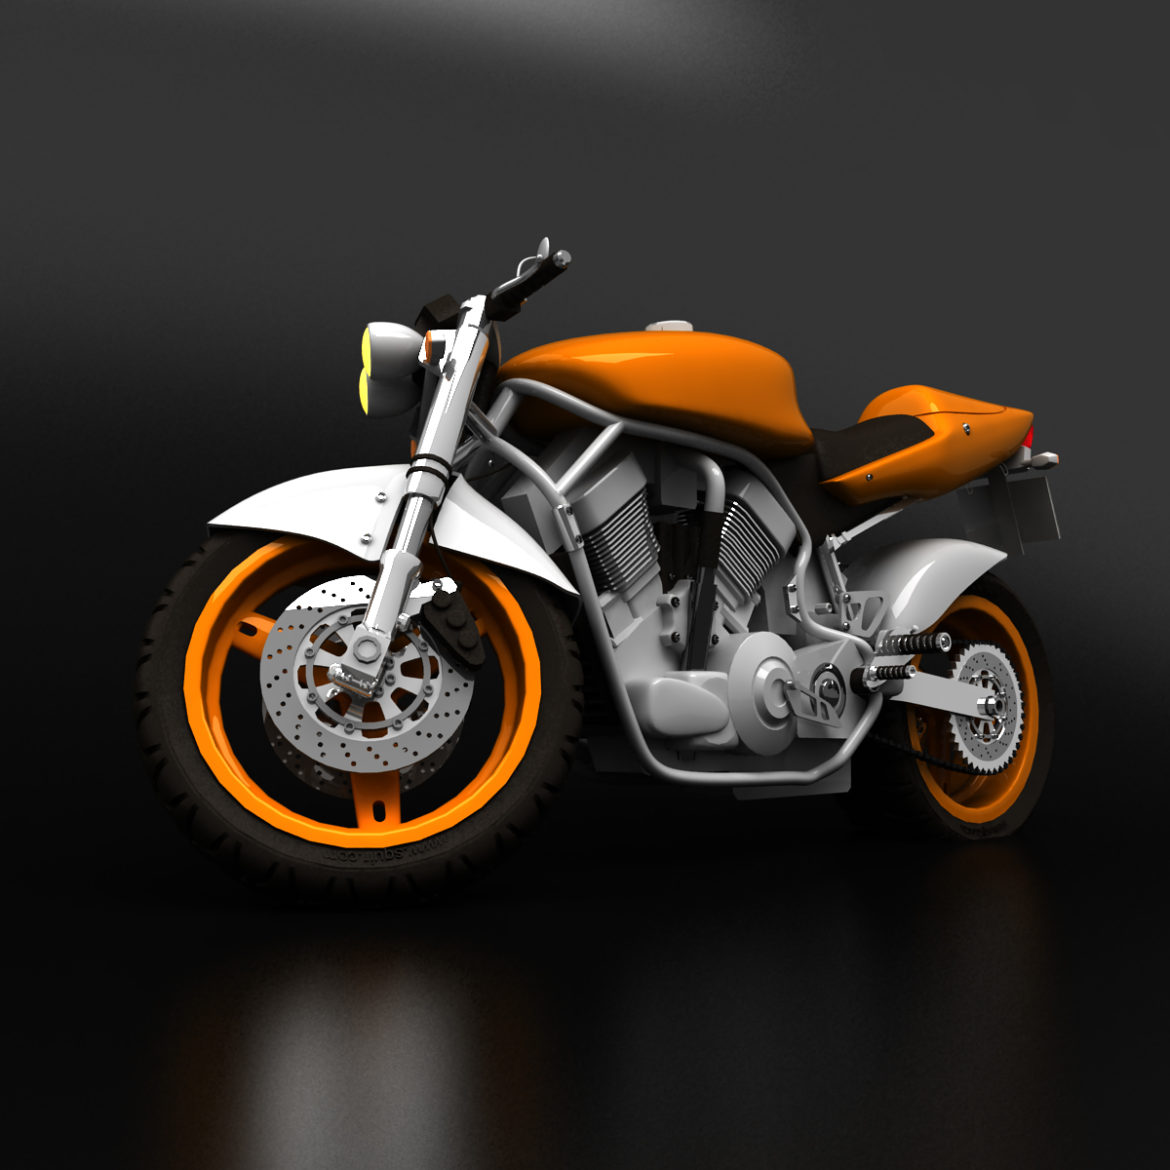 suzuki street fighter motorcycle 3d model 3ds max fbx obj 293877